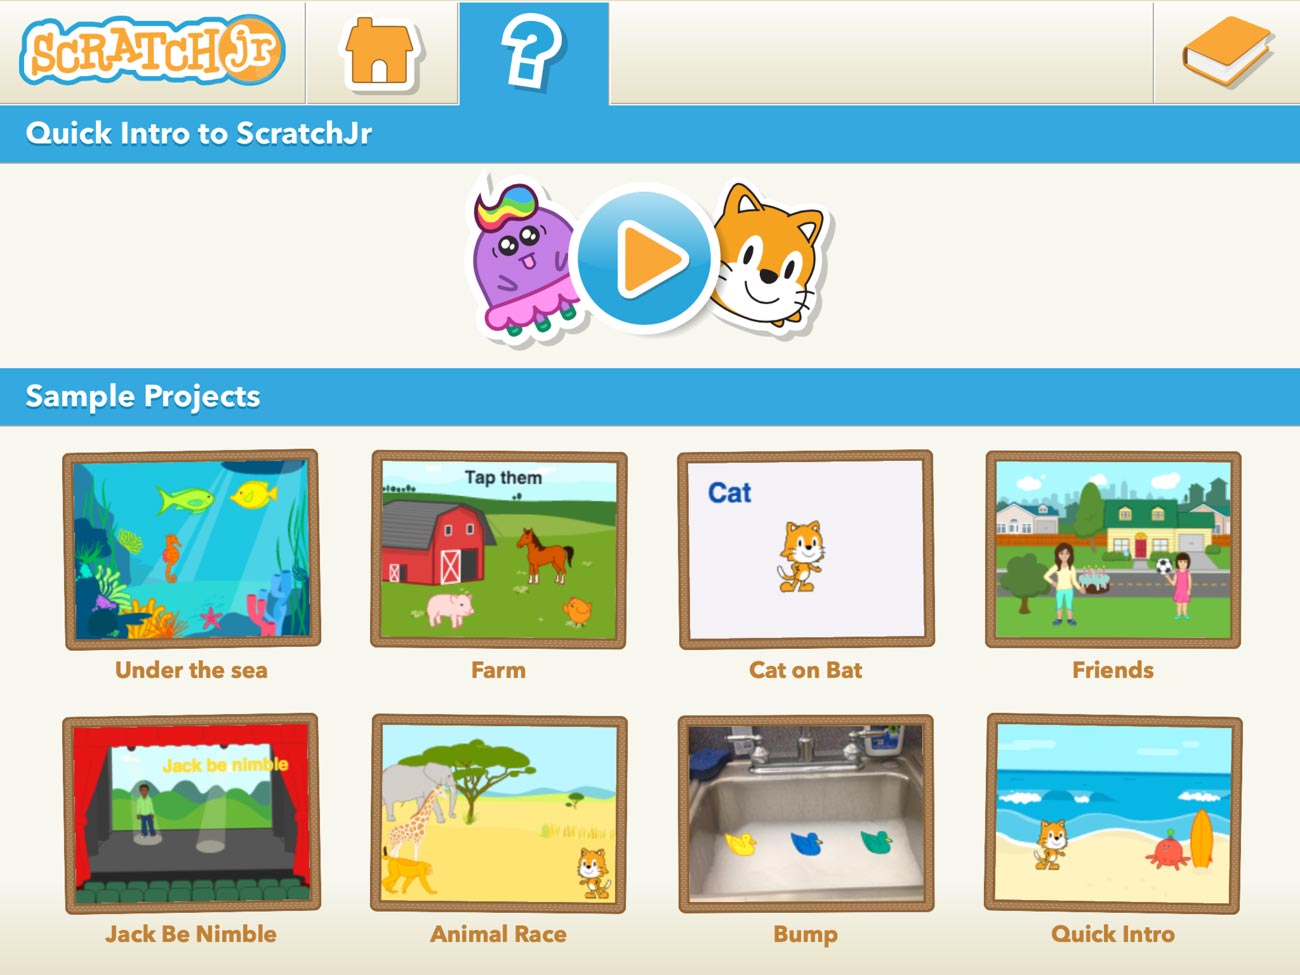 ScratchJr has a good help system, including an introductory video and sample projects to play with.